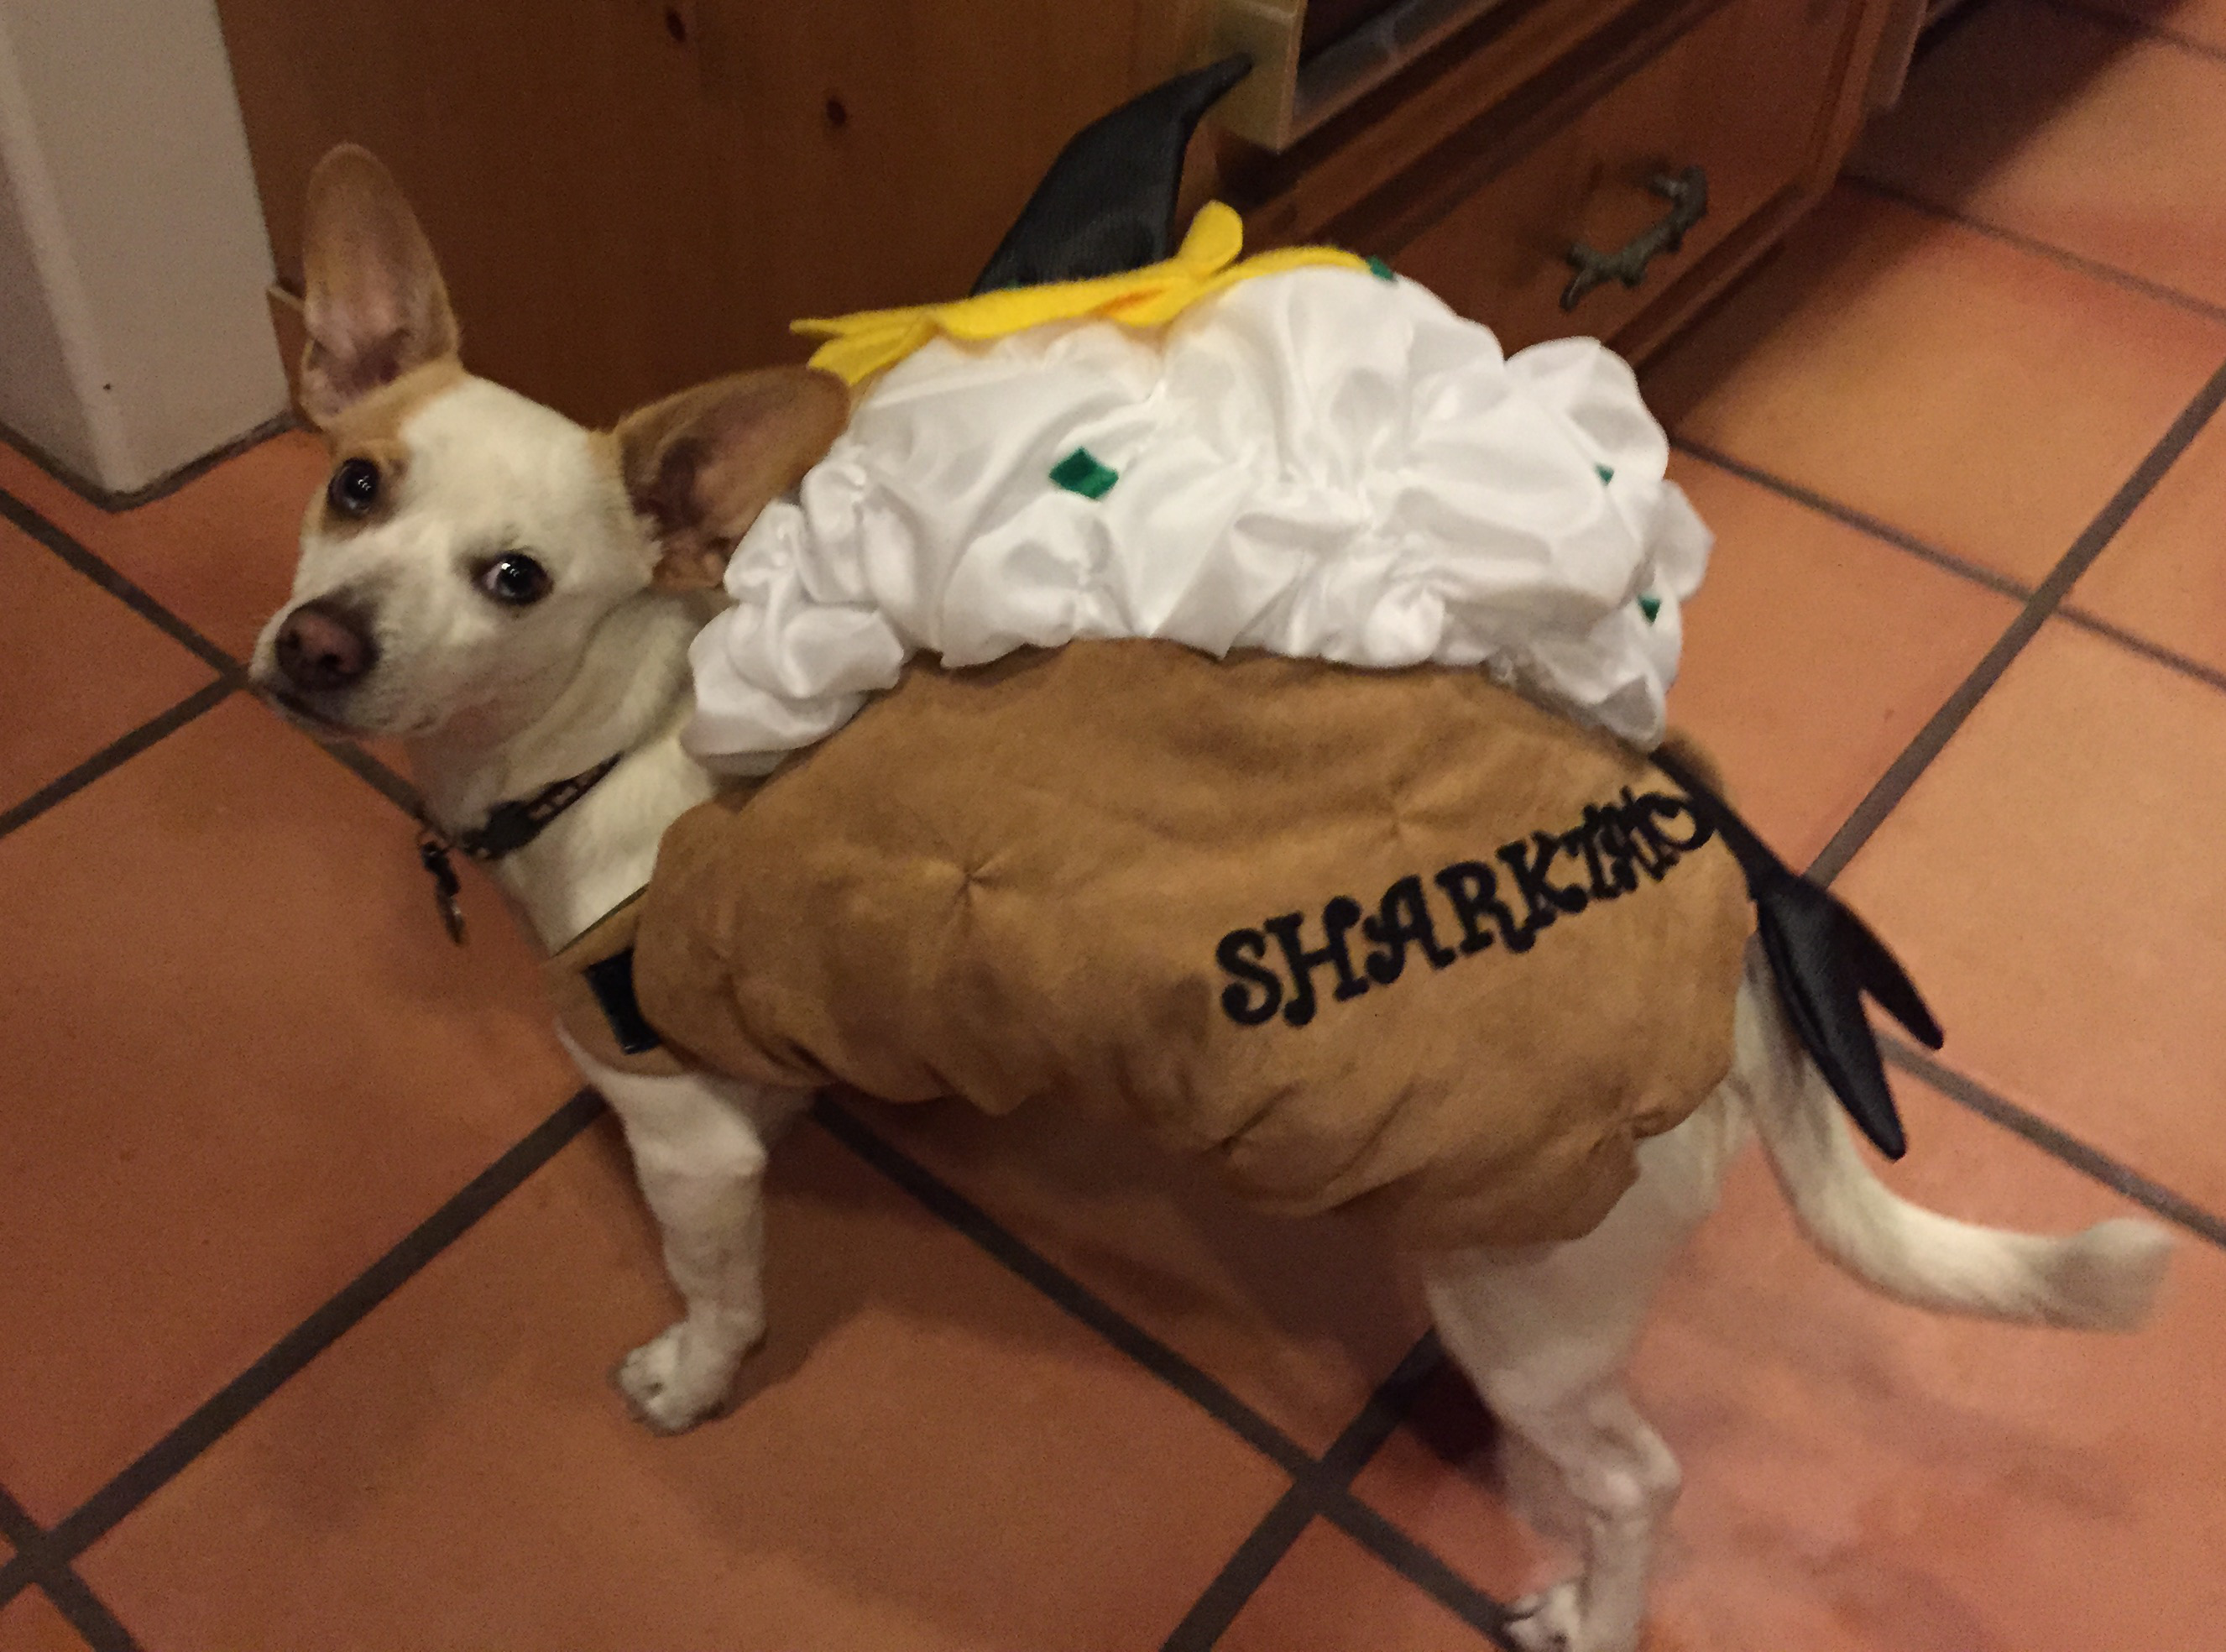 & The pros and cons of pet Halloween costumes - Dr. Marty Becker